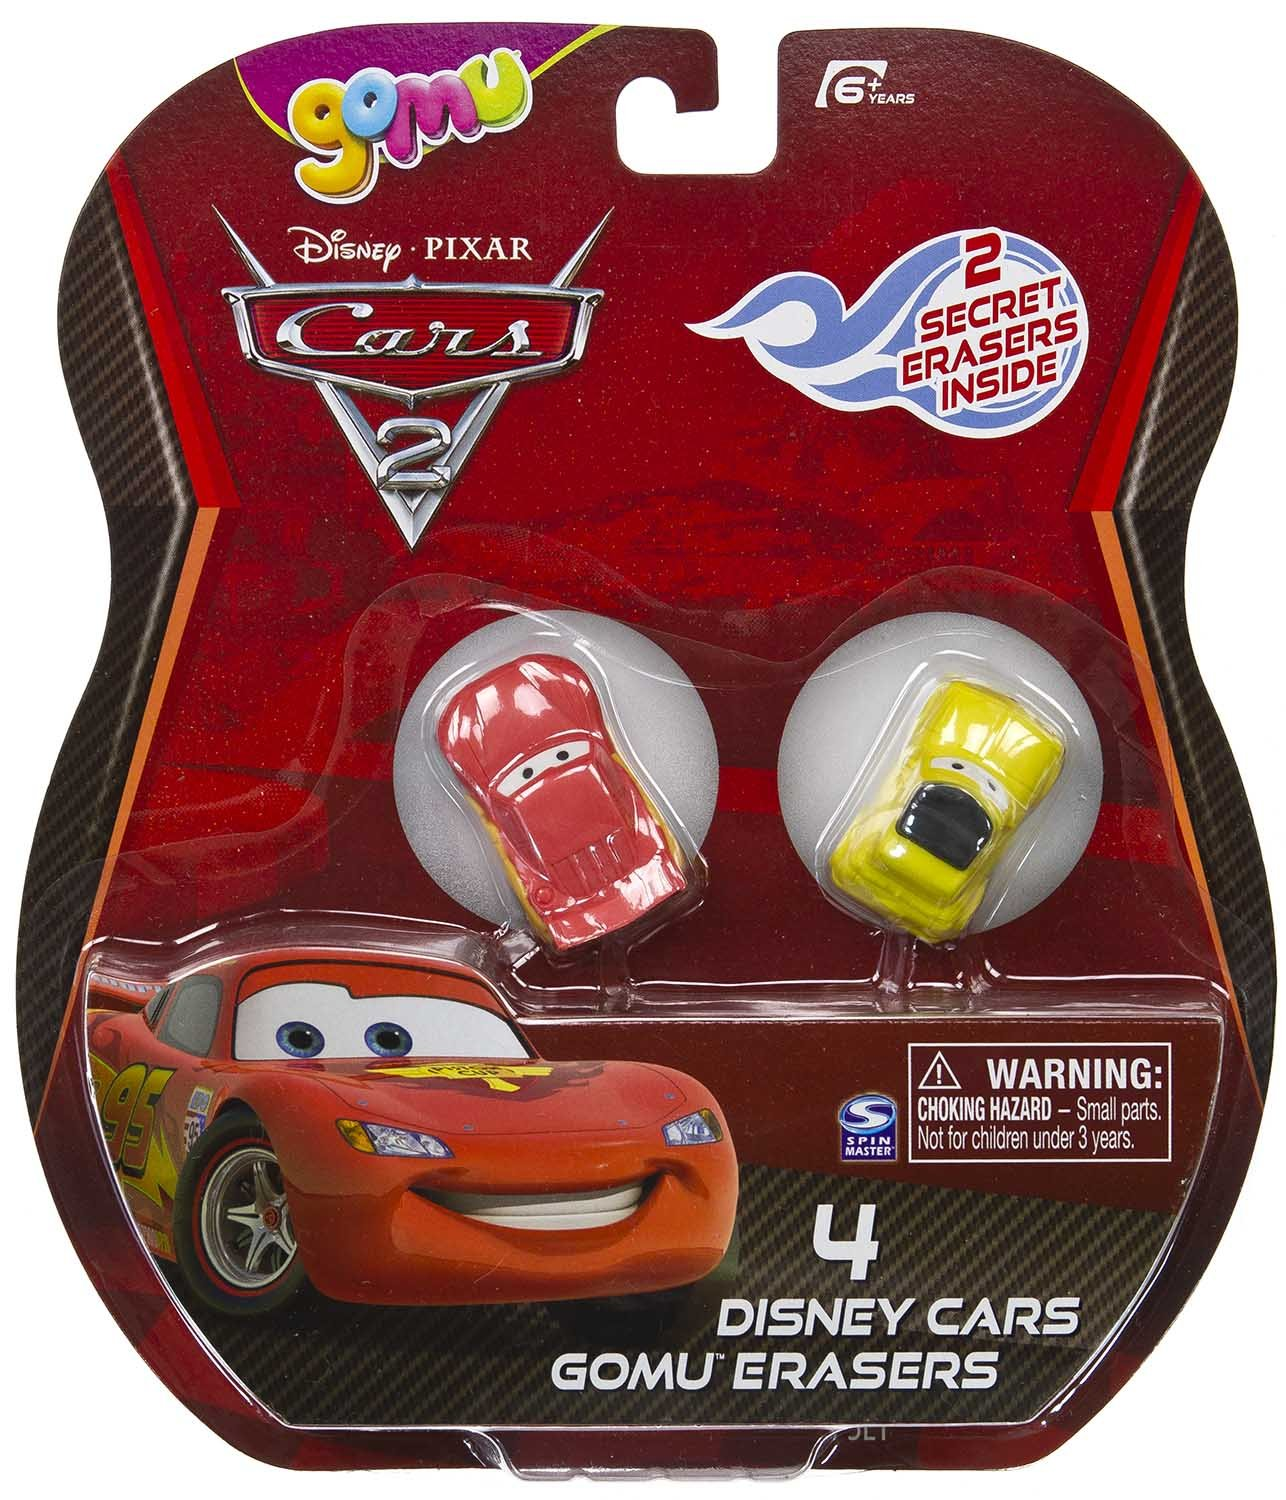 2 Mysteries - Pixar Cars 2 X Gomu Collectible Erasers Series #1 4 Mini-Erasers Luigi Lightning McQueen